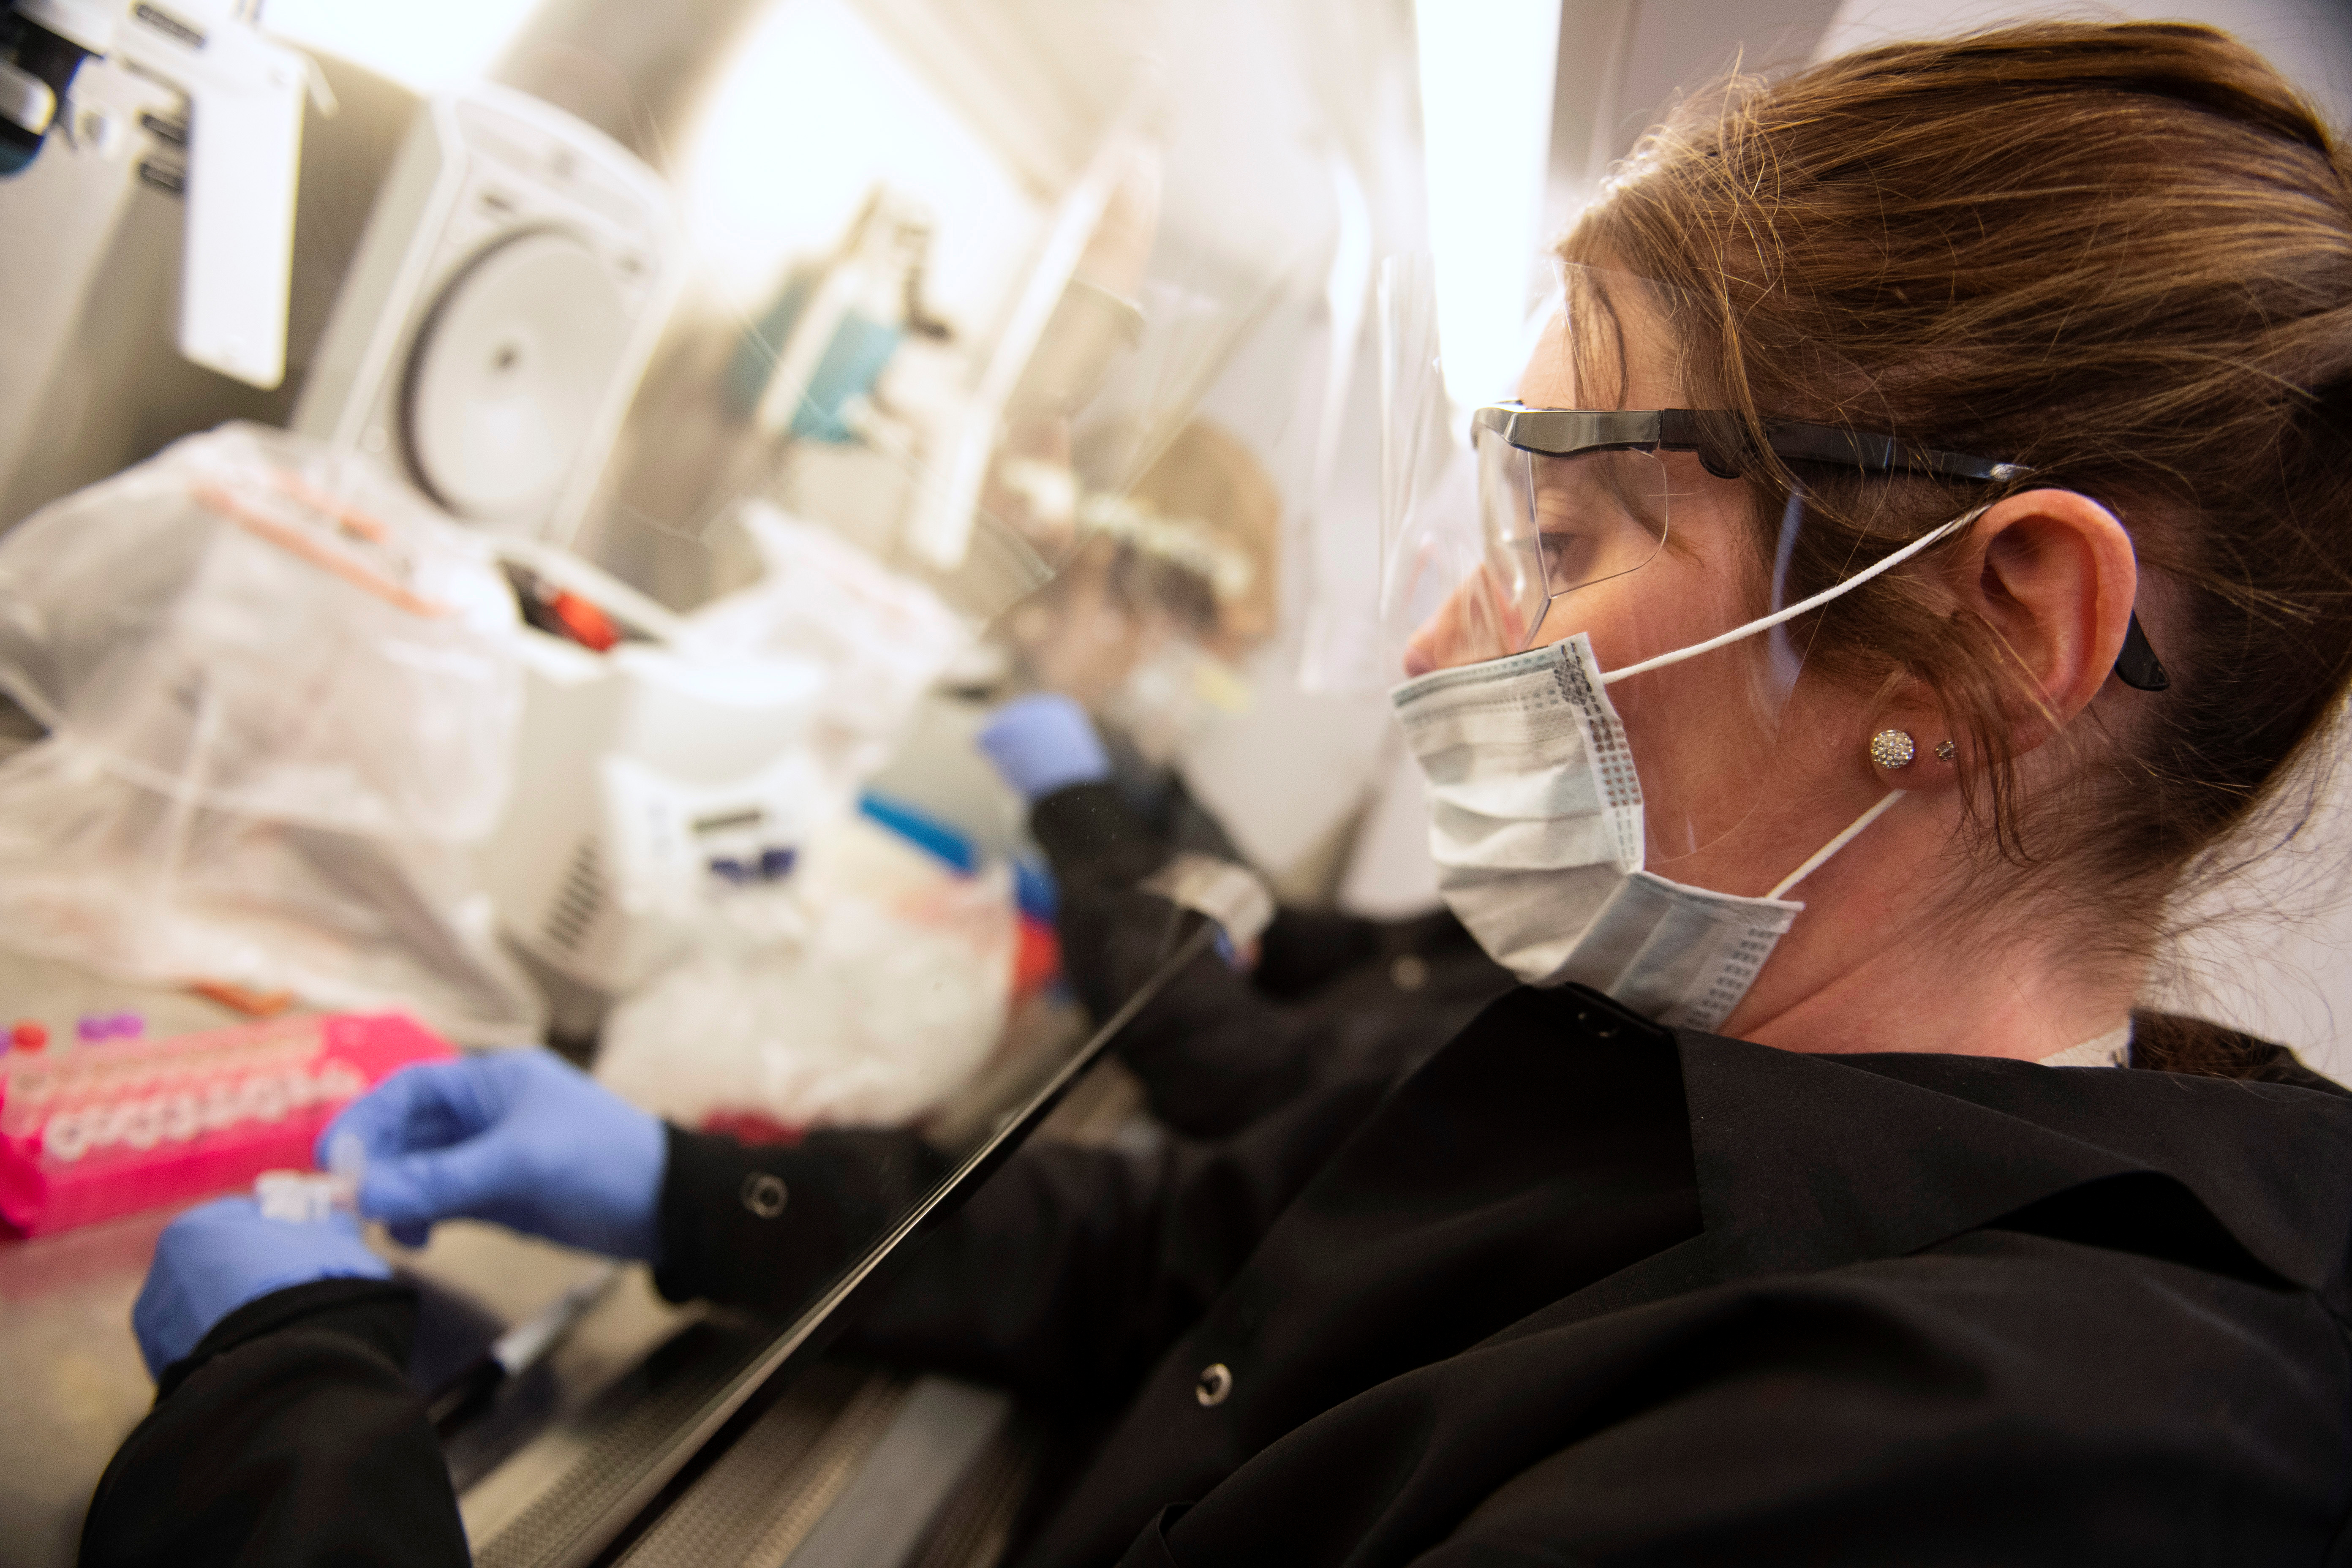 Kylene Karnuth, a clinical lab scientist, works with coronavirus samples as researchers begin a trial to see whether malaria treatment hydroxychloroquine can prevent or reduce the severity of the coronavirus disease.